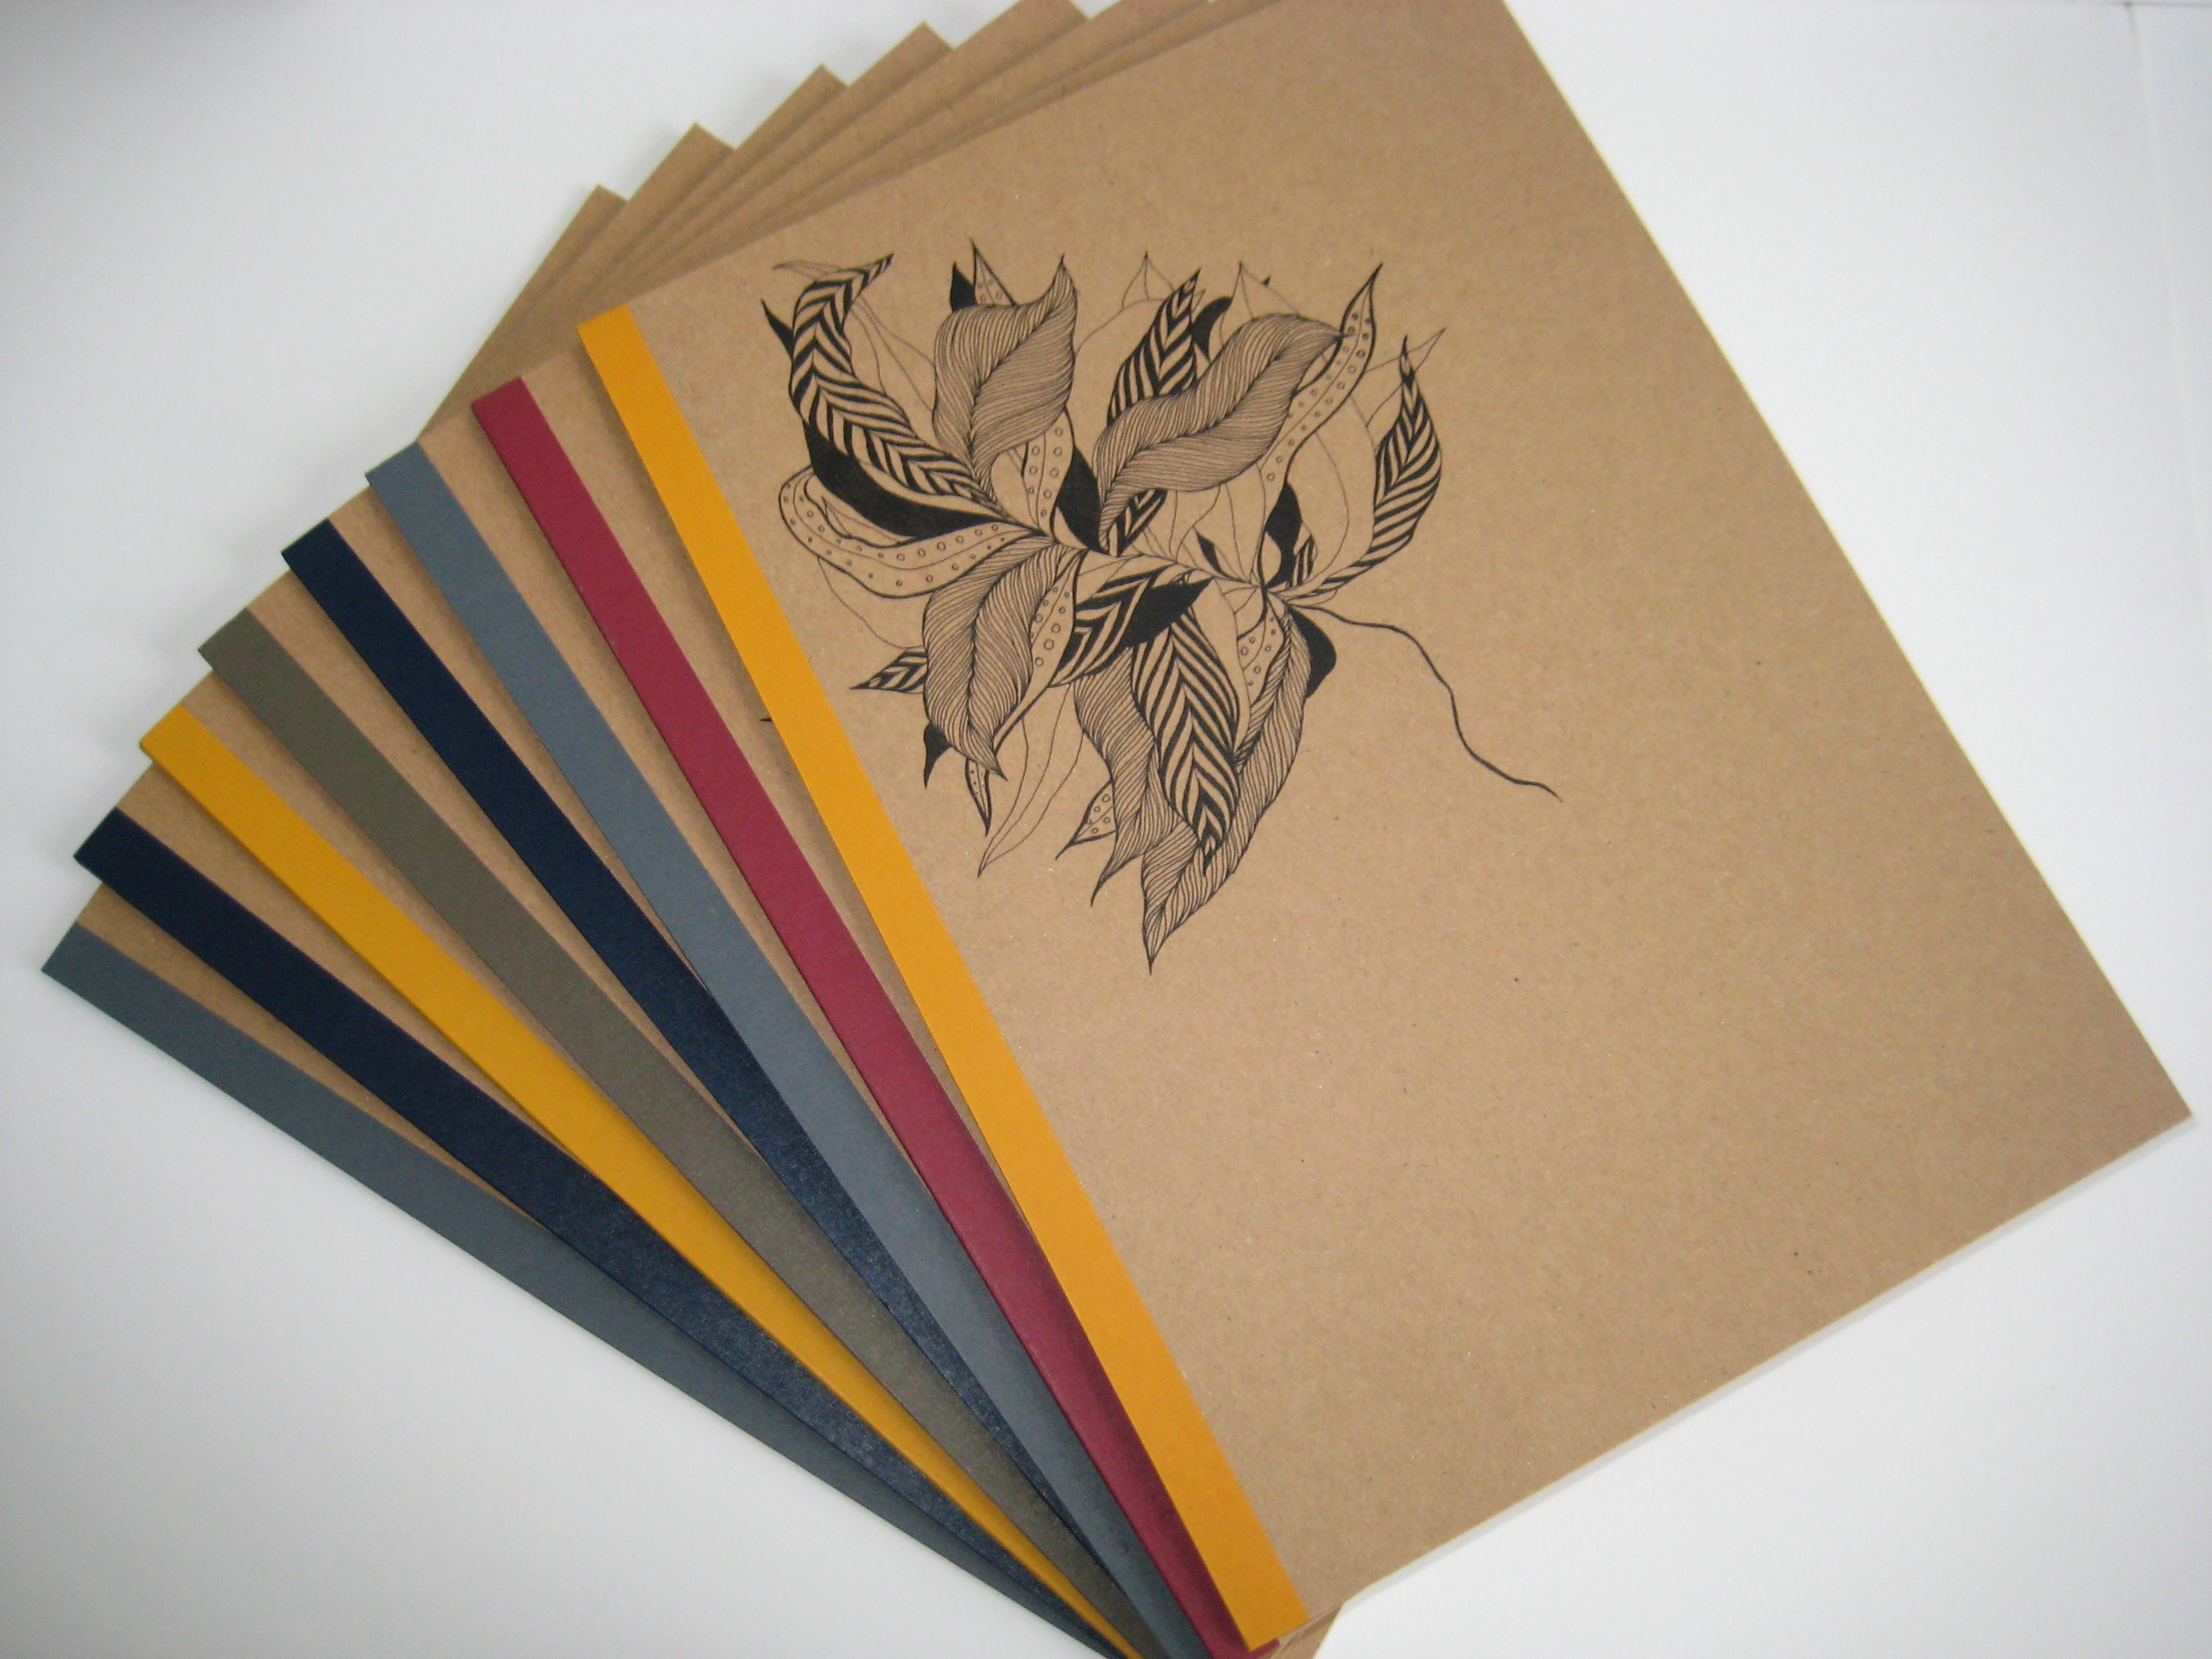 Branches on journals, 2012